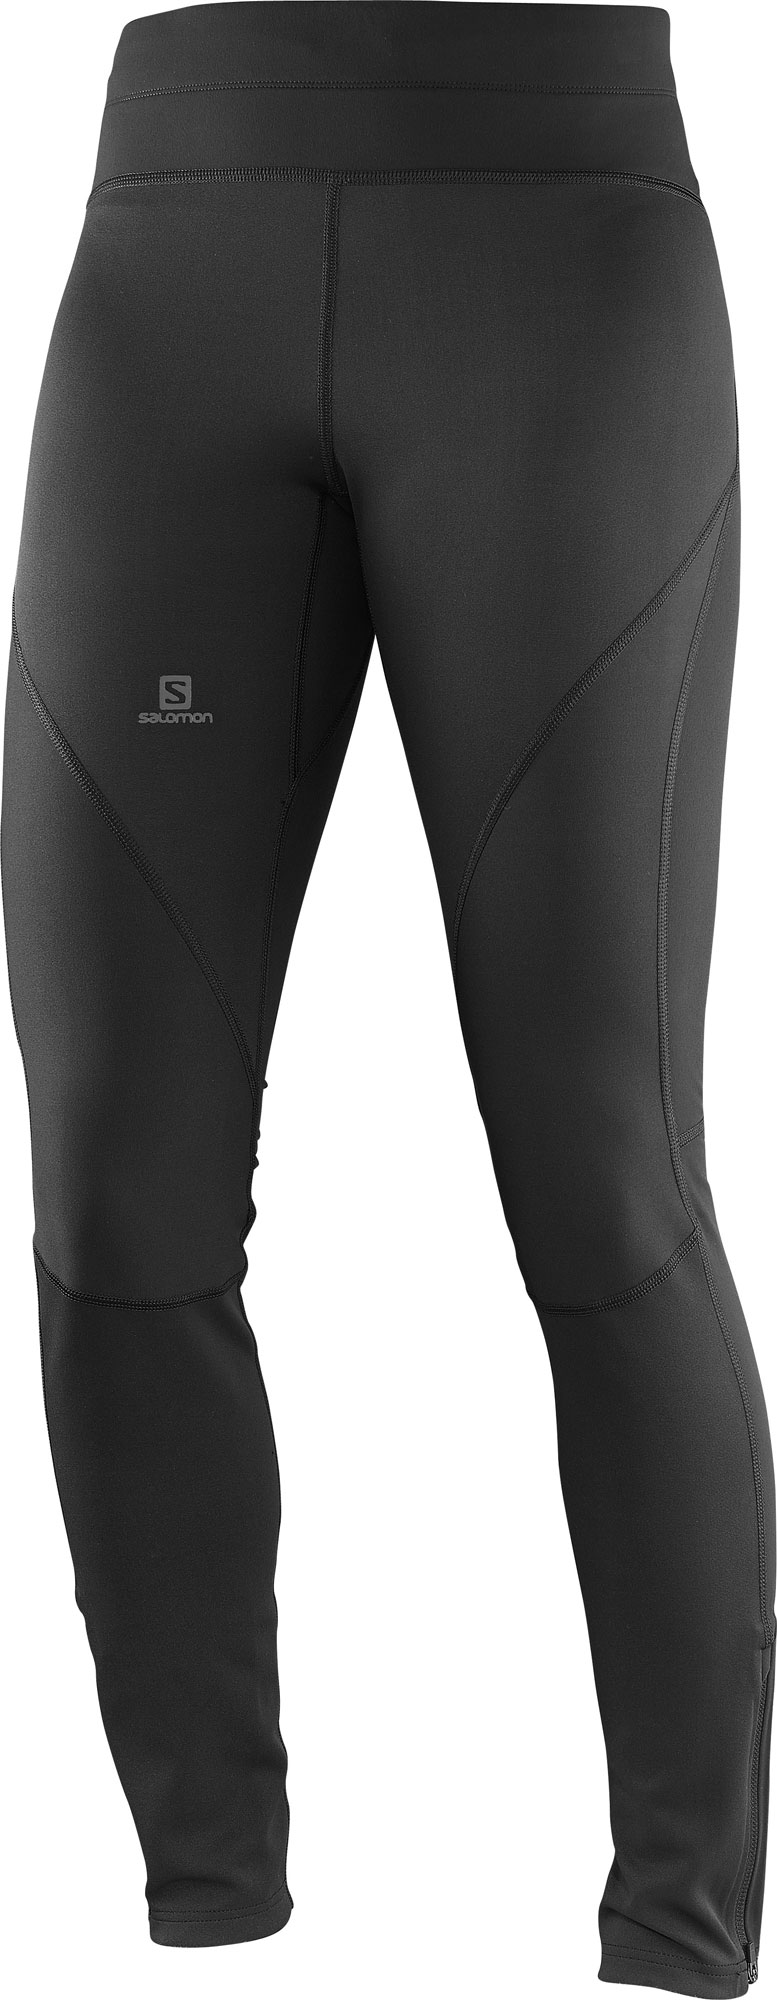 Salomon TRAIL WINDSTOPPER TIGHT W | sportisimo.pl